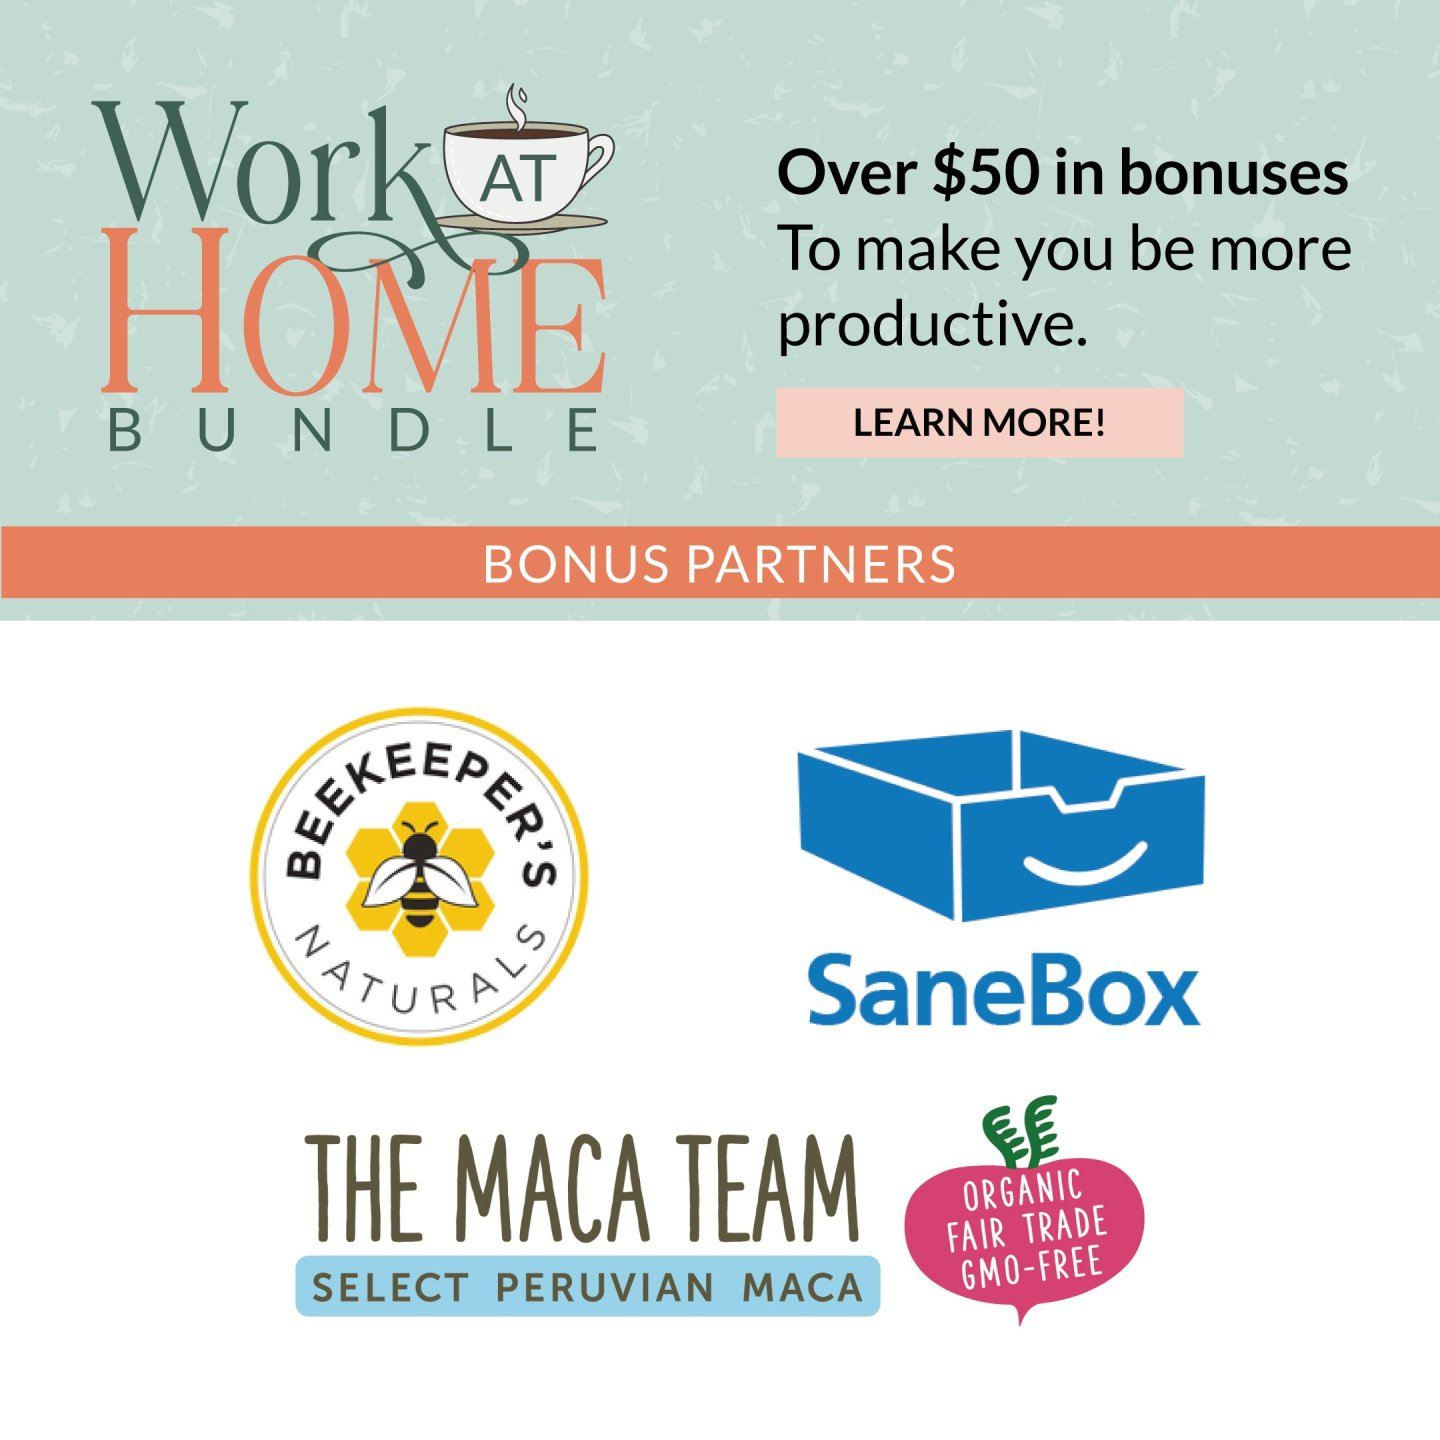 Work at Home Ultimate Bundles